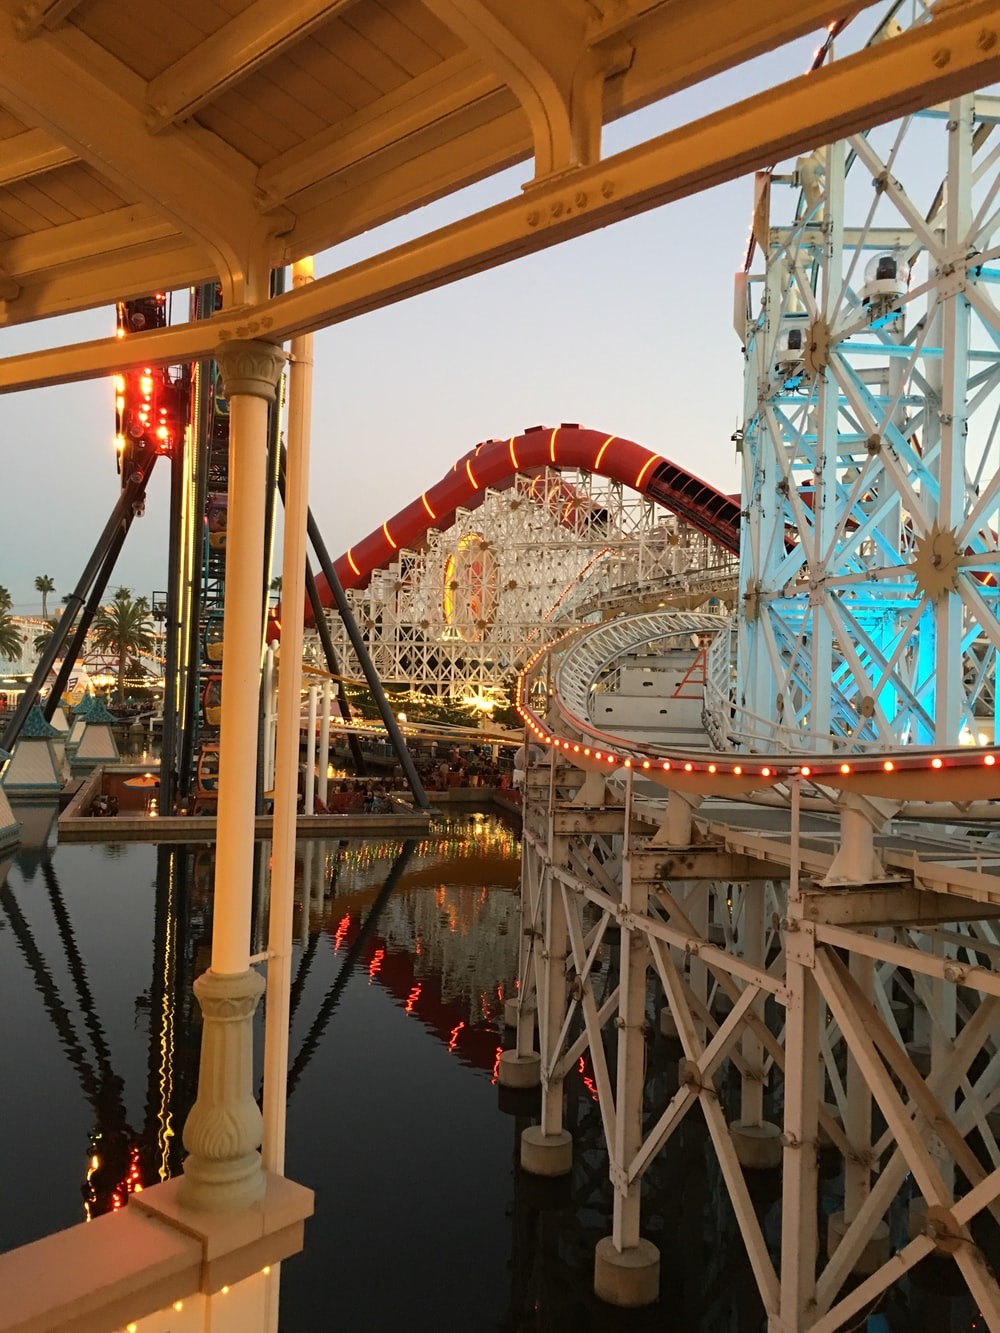 amusement park on body of water